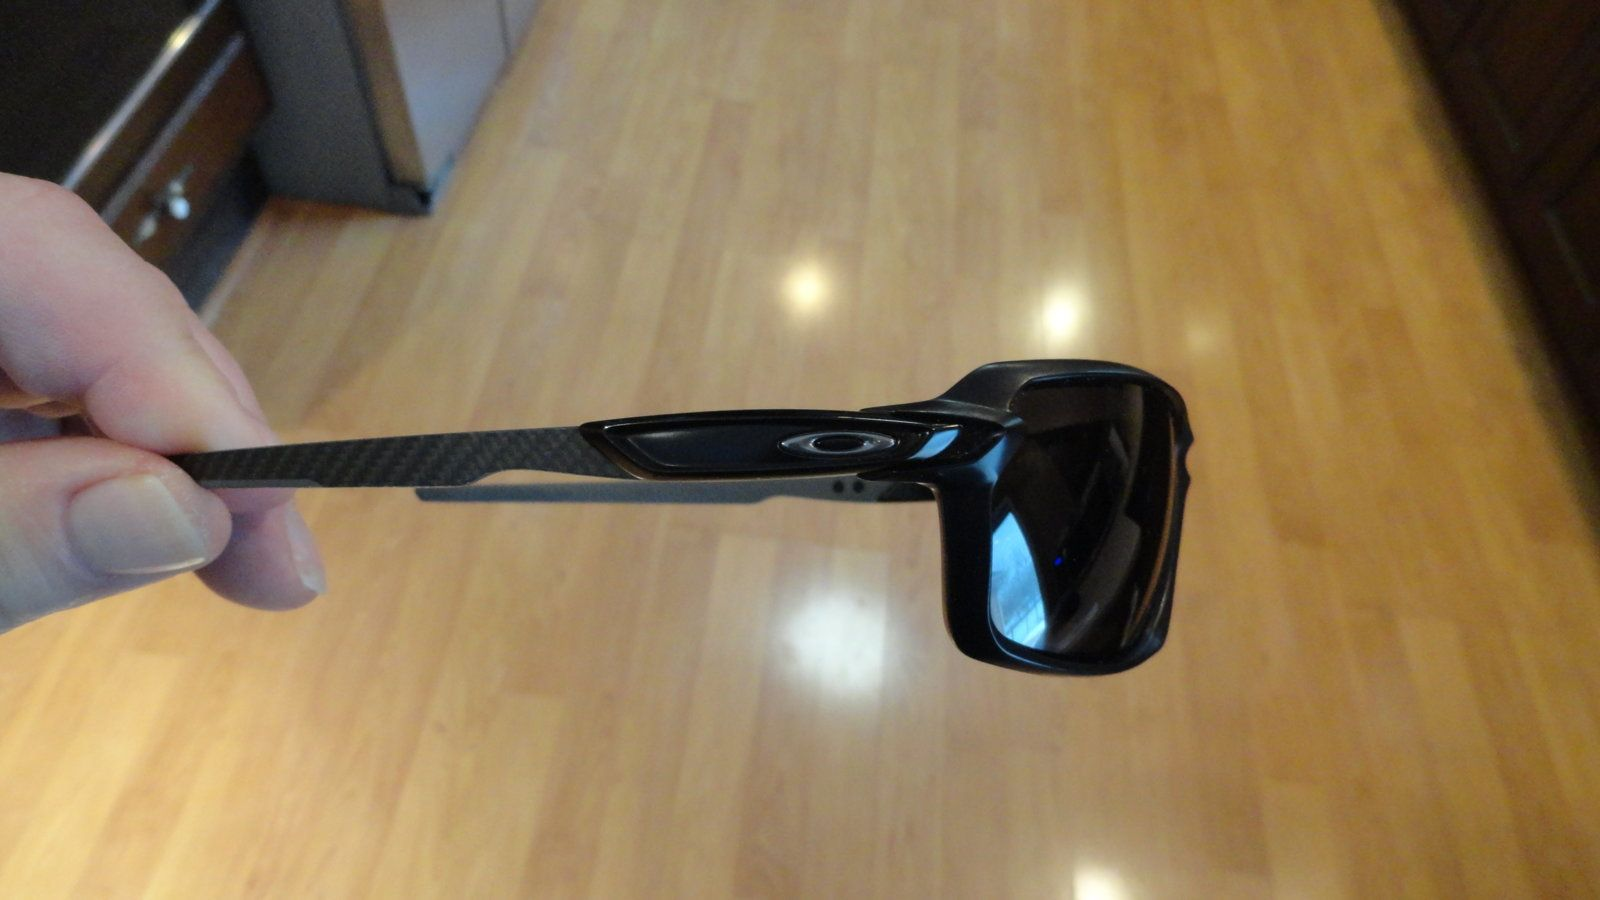 45a0cb0135 ... OAKLEY Carbon Shift- Matte black carbon frames- silver icon-   Replacement  ...